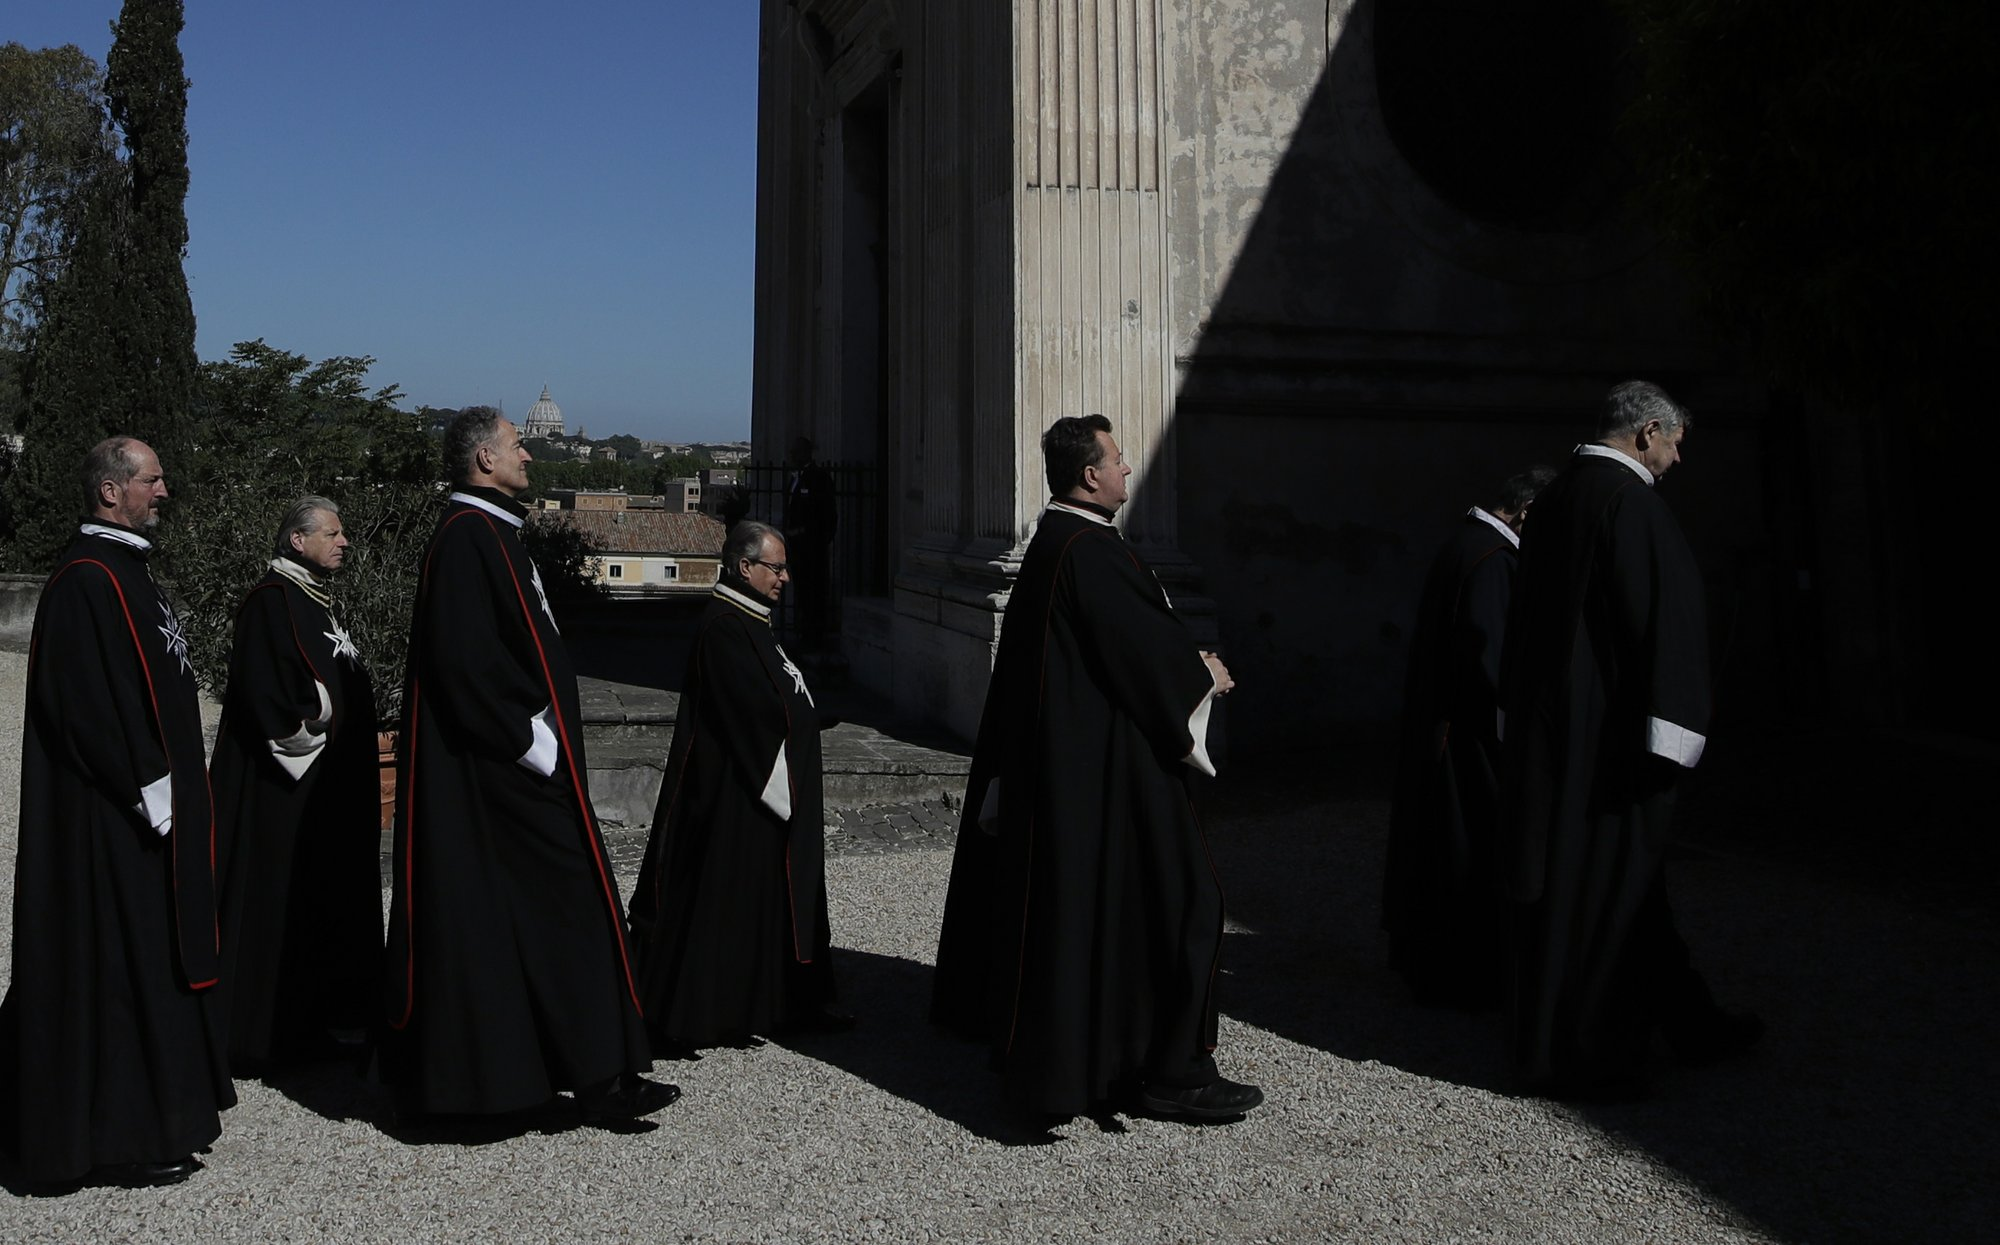 Knights of Malta elect temporary leader for reform period